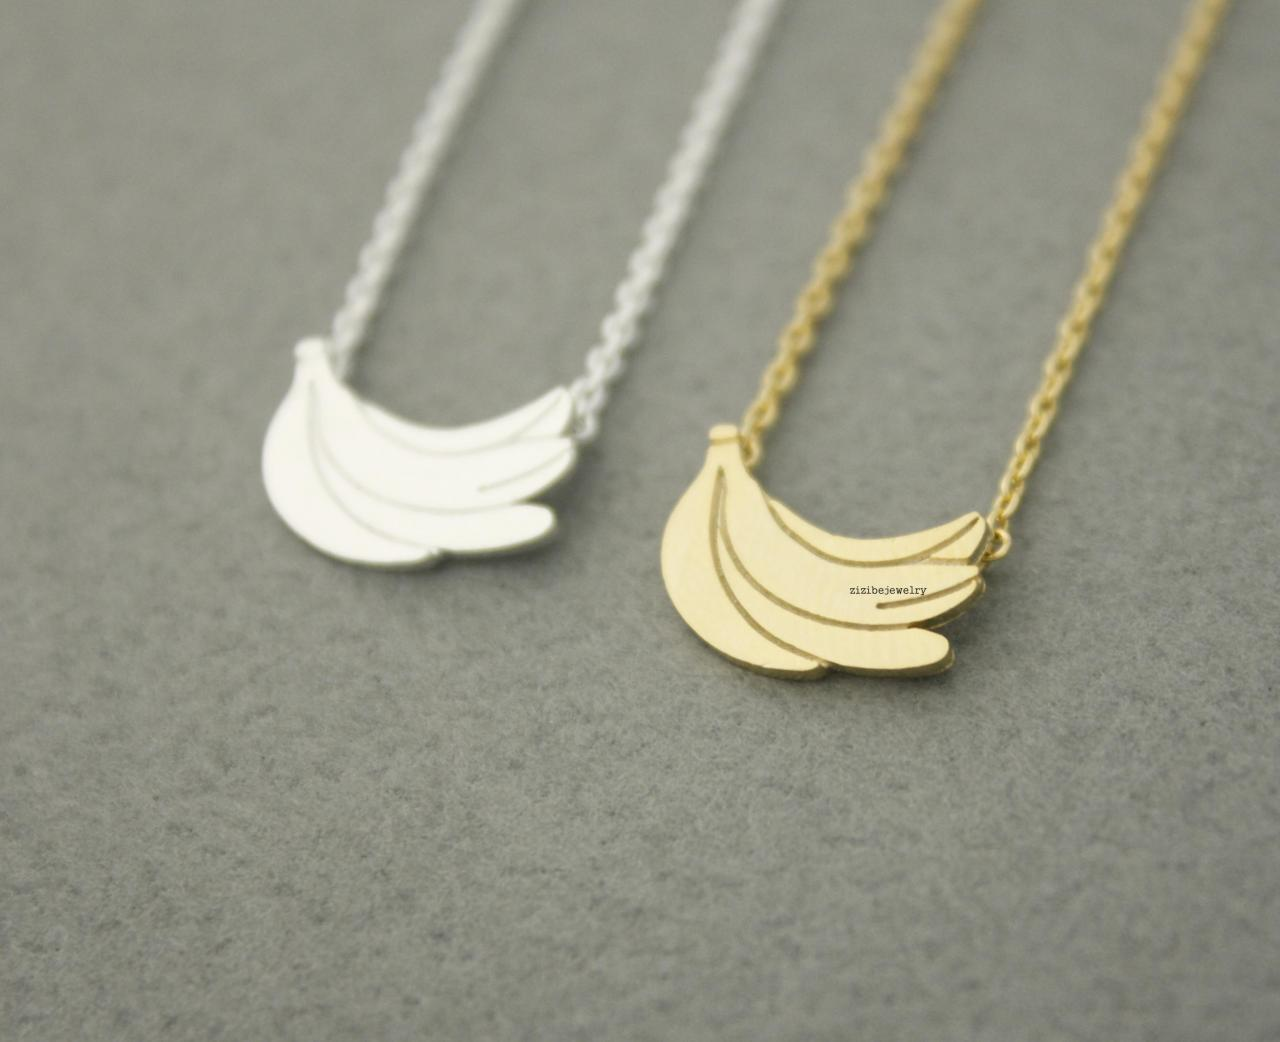 A bunch of Bananas pendant necklaces in gold / silver, N0609G